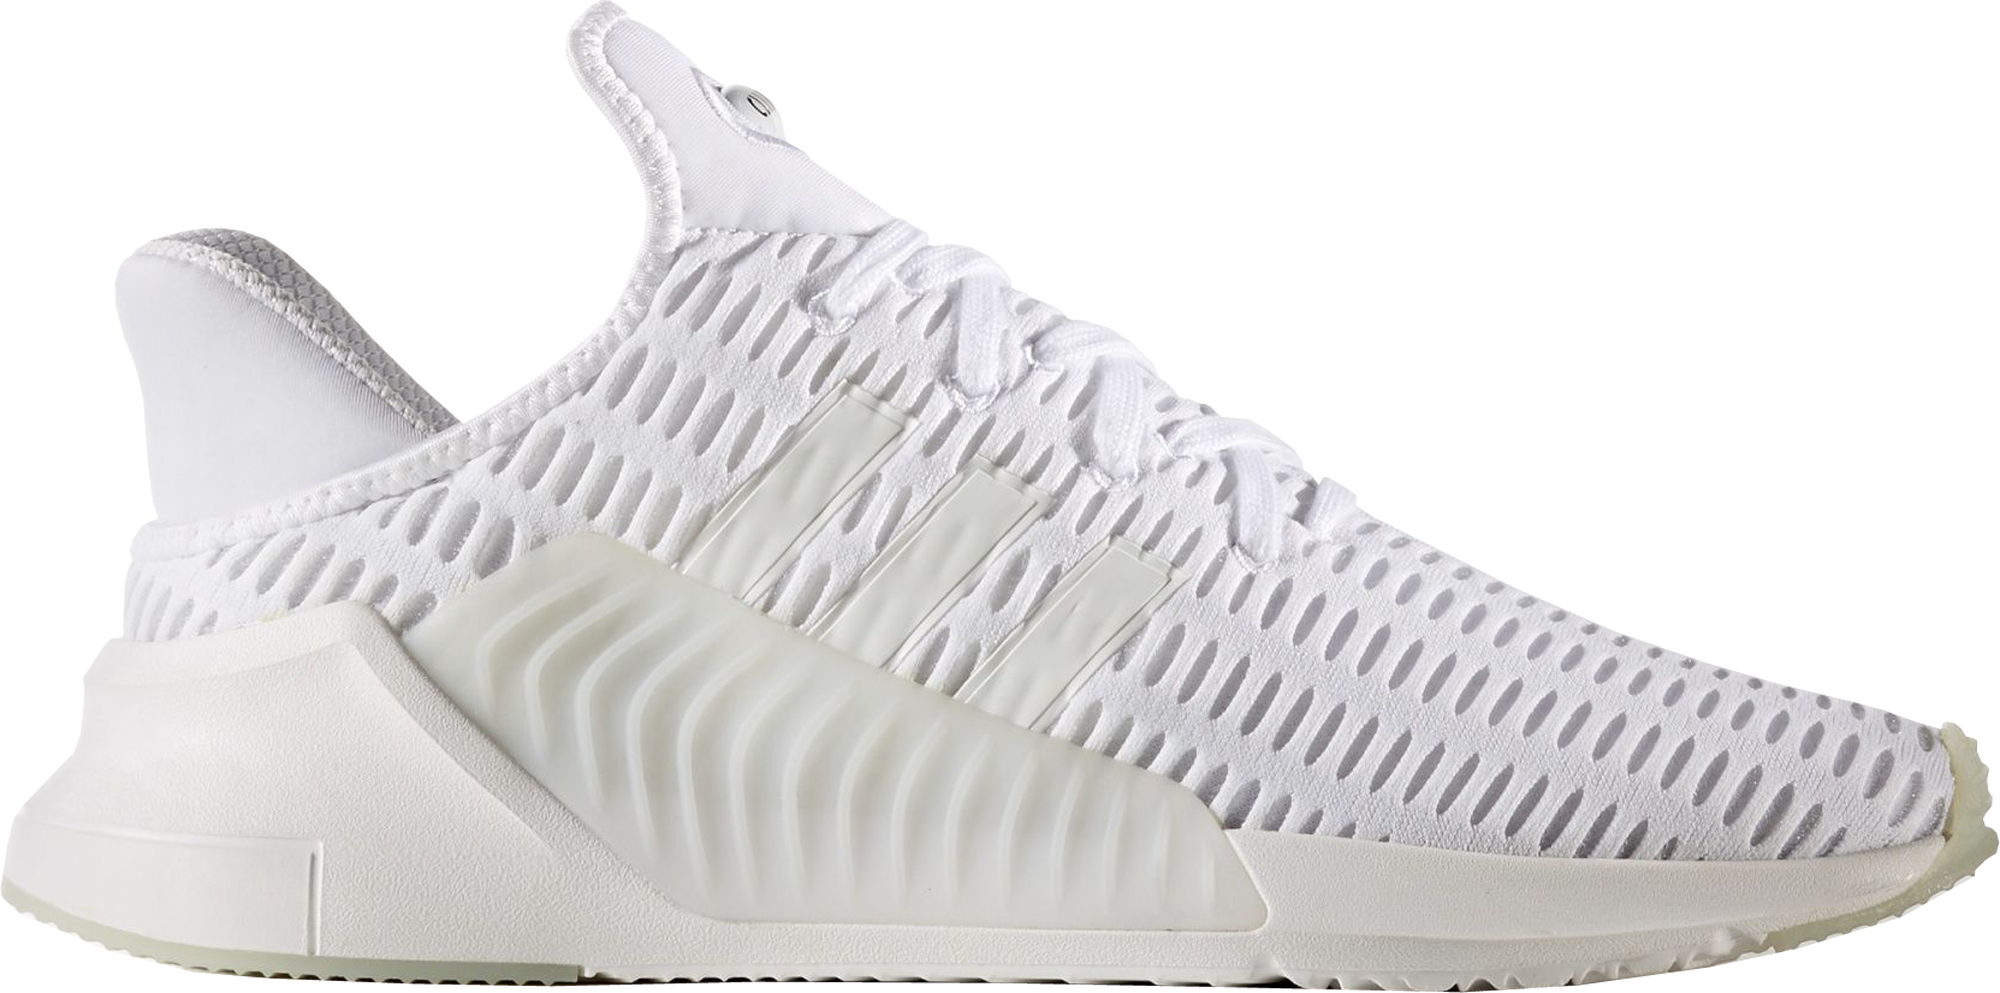 official photos 6247b d3687 ... free shipping adidas climacool 02 17 triple white 35b1f 511d9